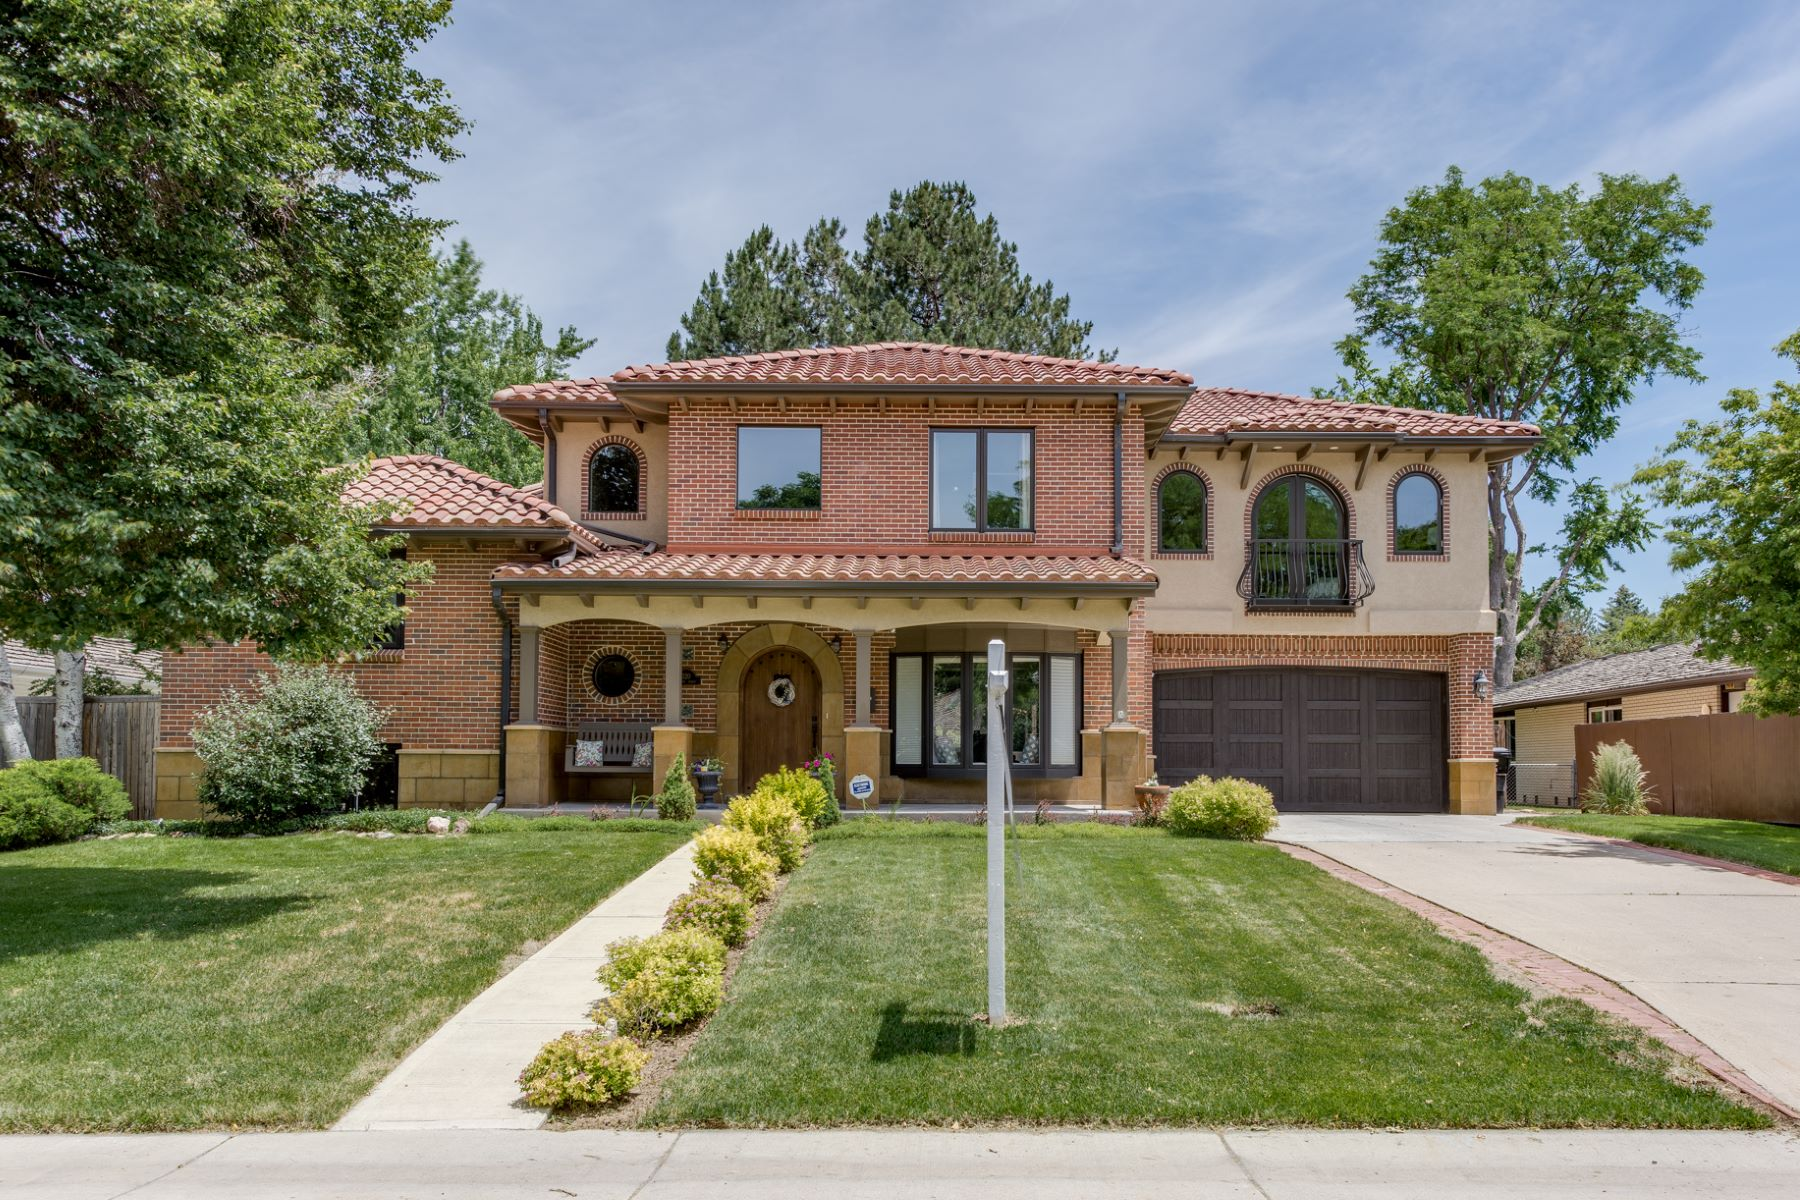 Single Family Home for Sale at Crestmoor Mediterranean Style Home 320 Leyden Street Hilltop, Denver, Colorado, 80220 United States